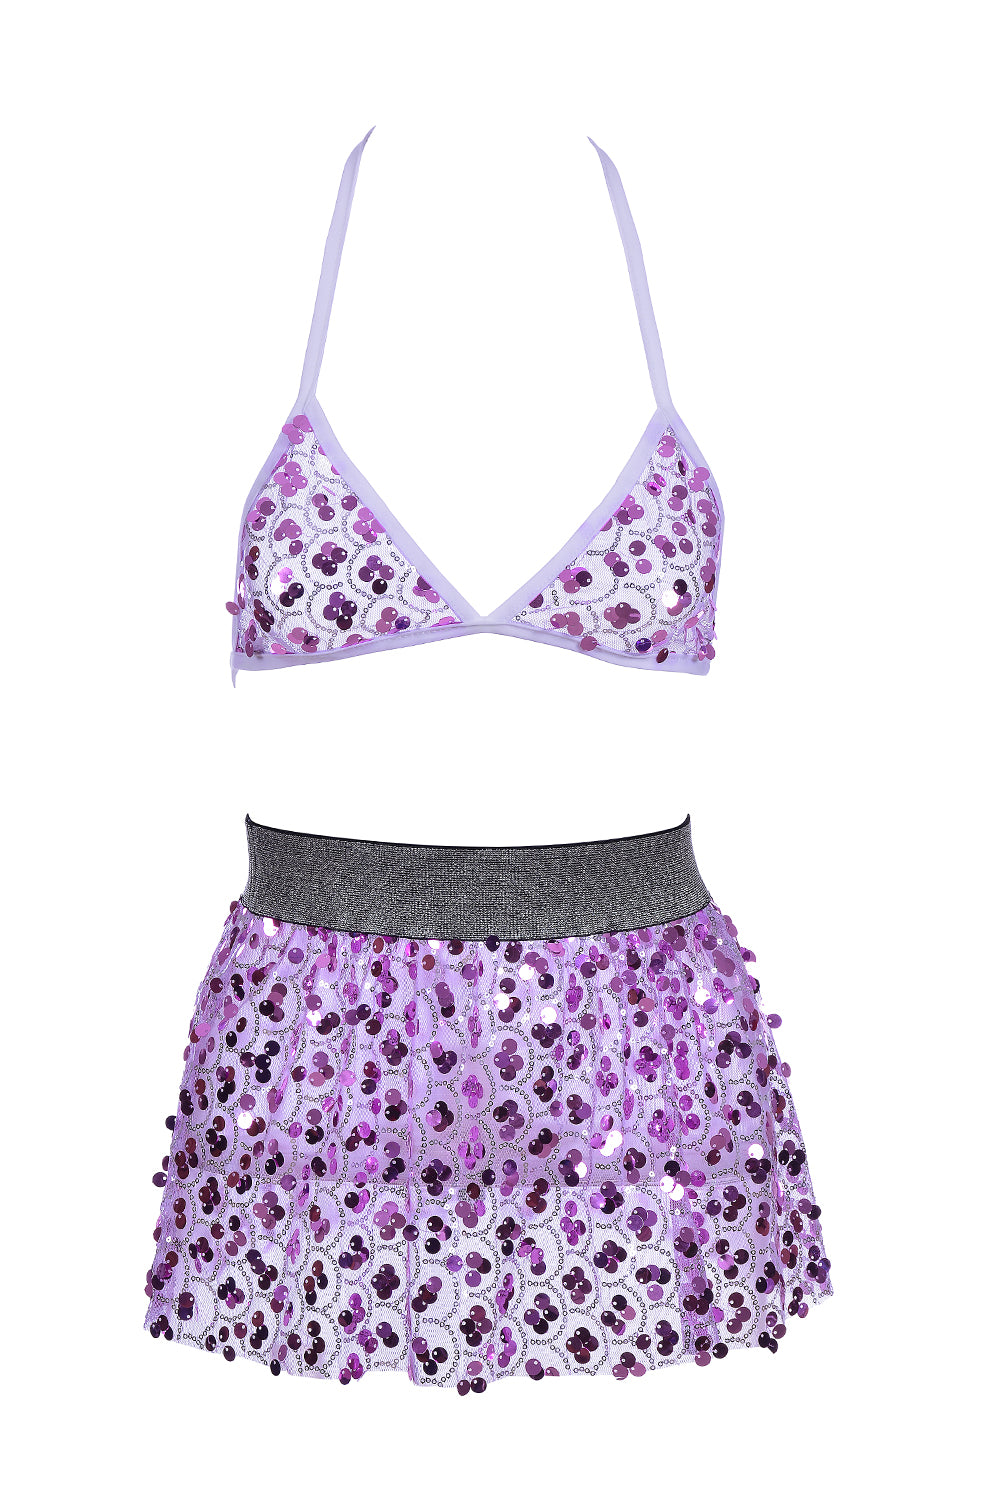 Fuchsia Treasure Sequin Set (Bra + Skirt)